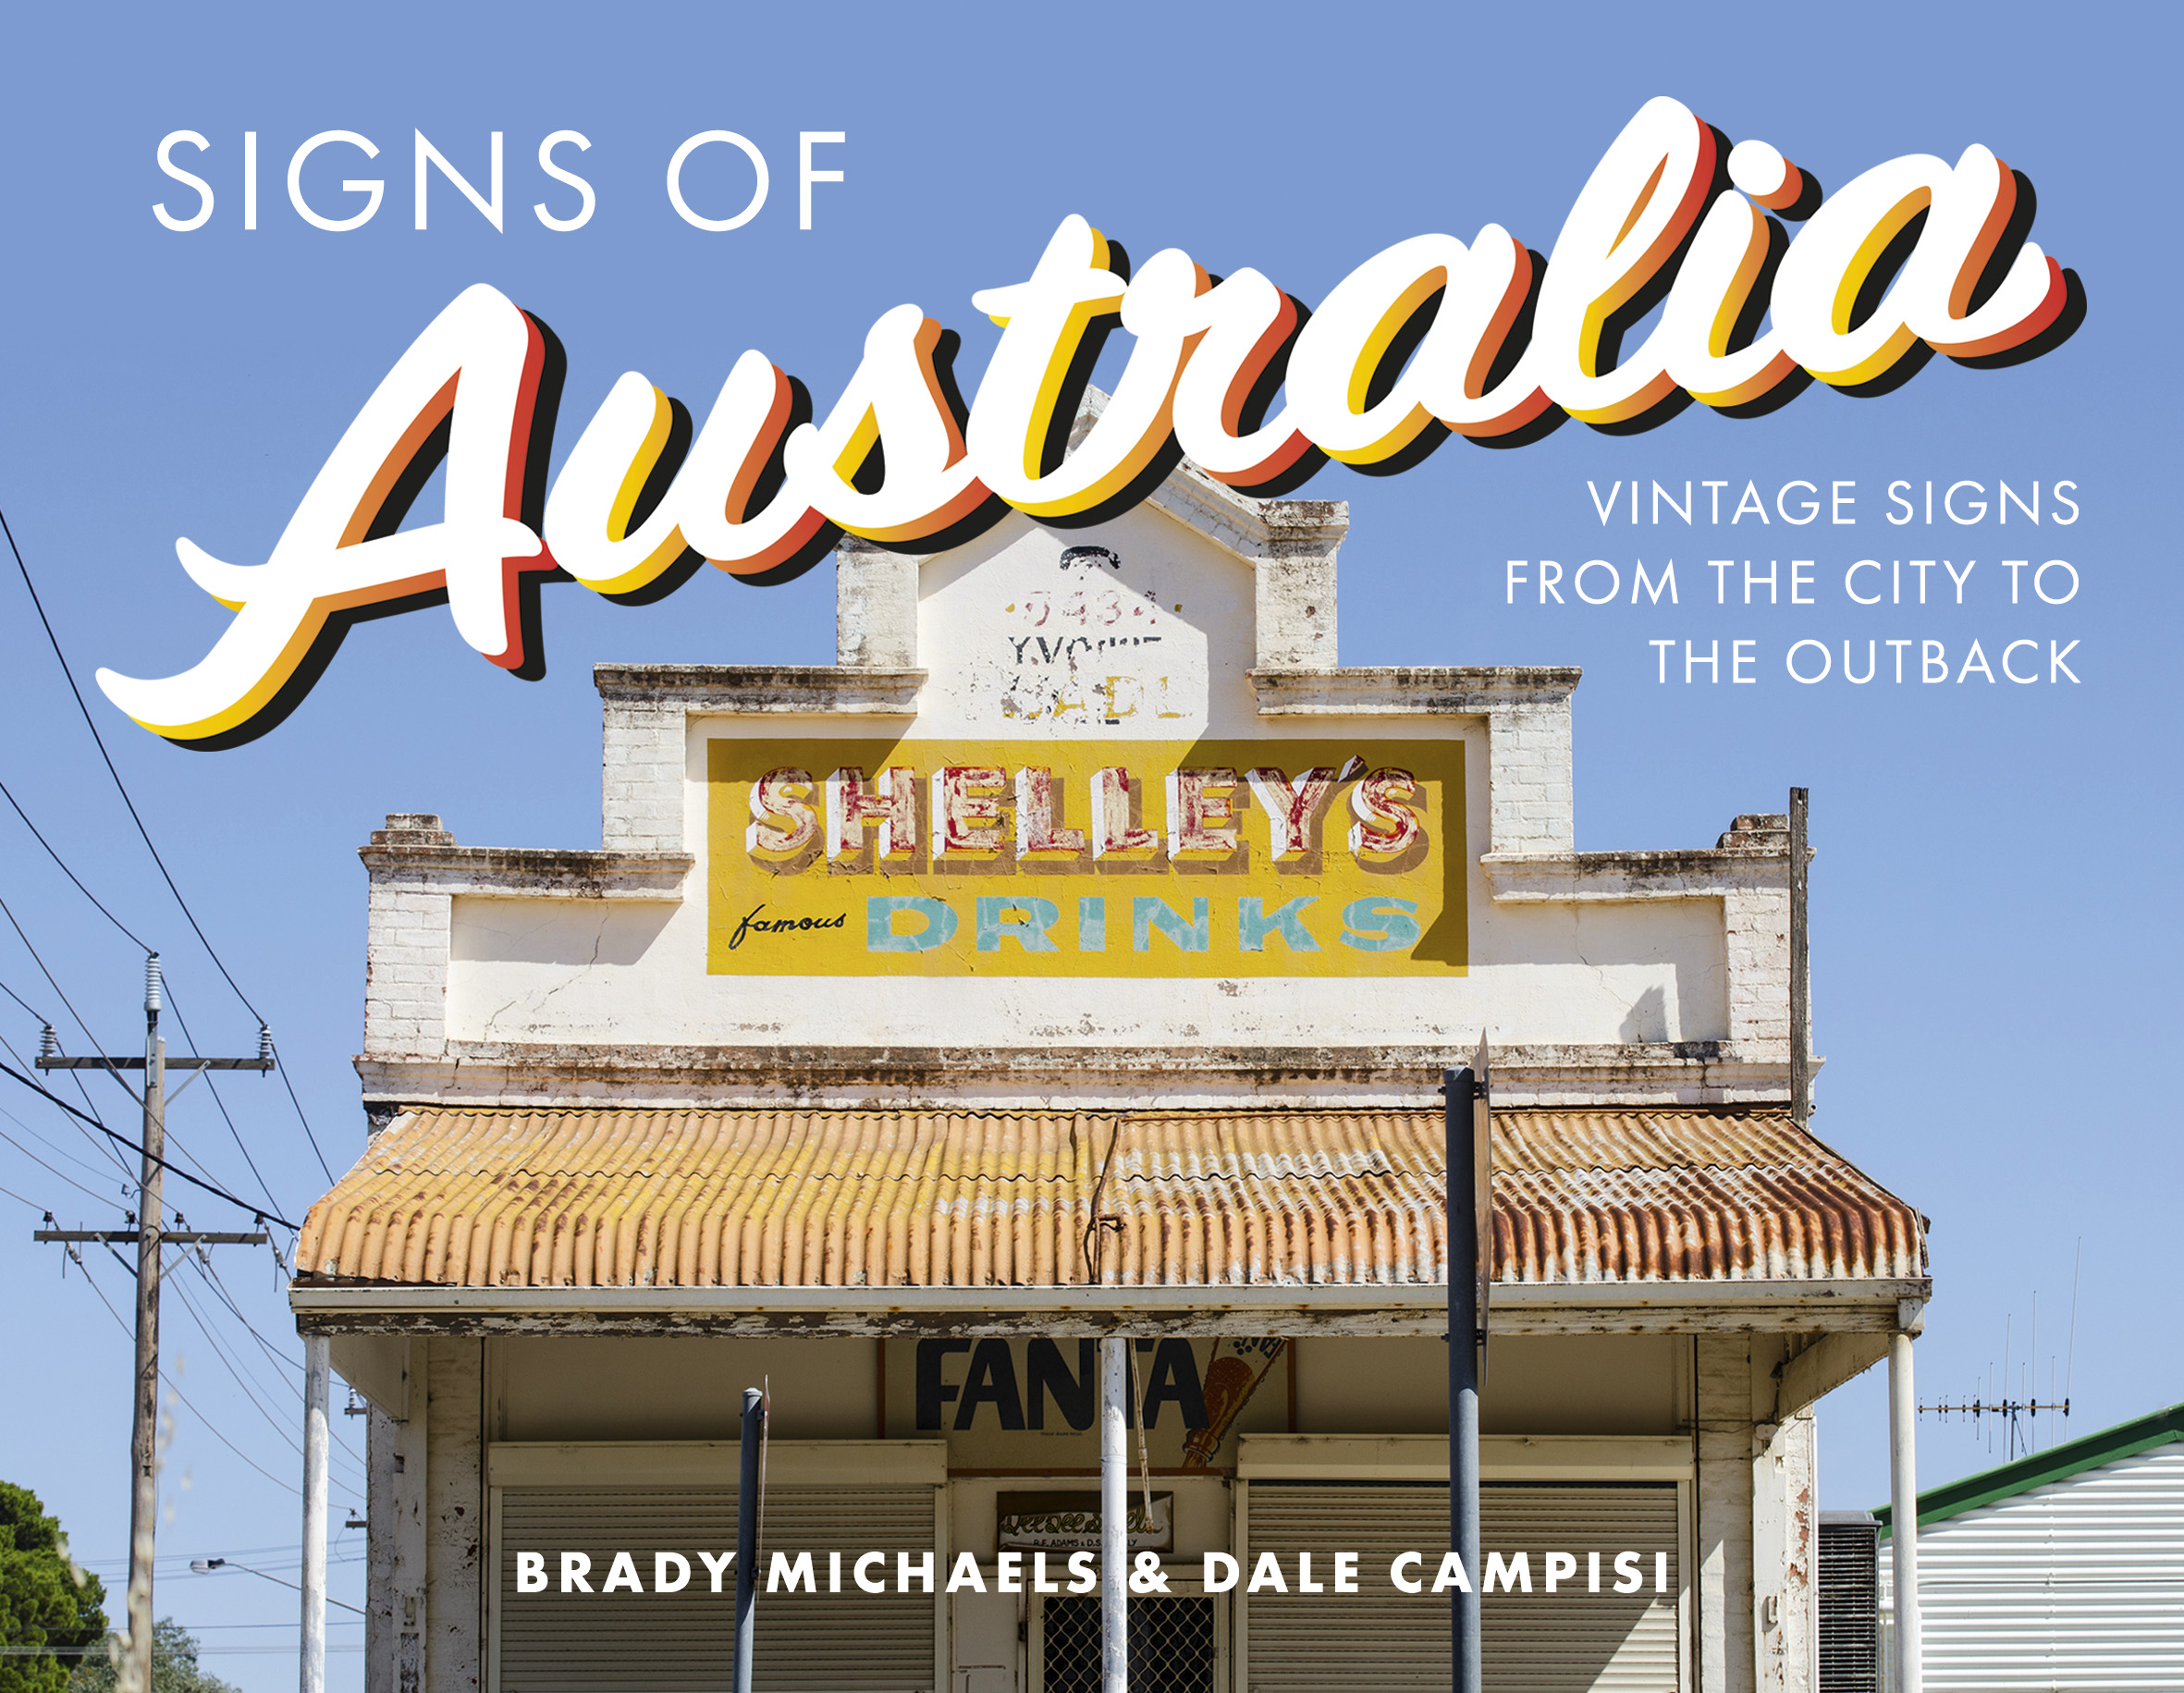 Signs of AustraliaVintage signs from the city to the outback by Brady Michaels,Dale Campisi, ISBN: 9781742235417